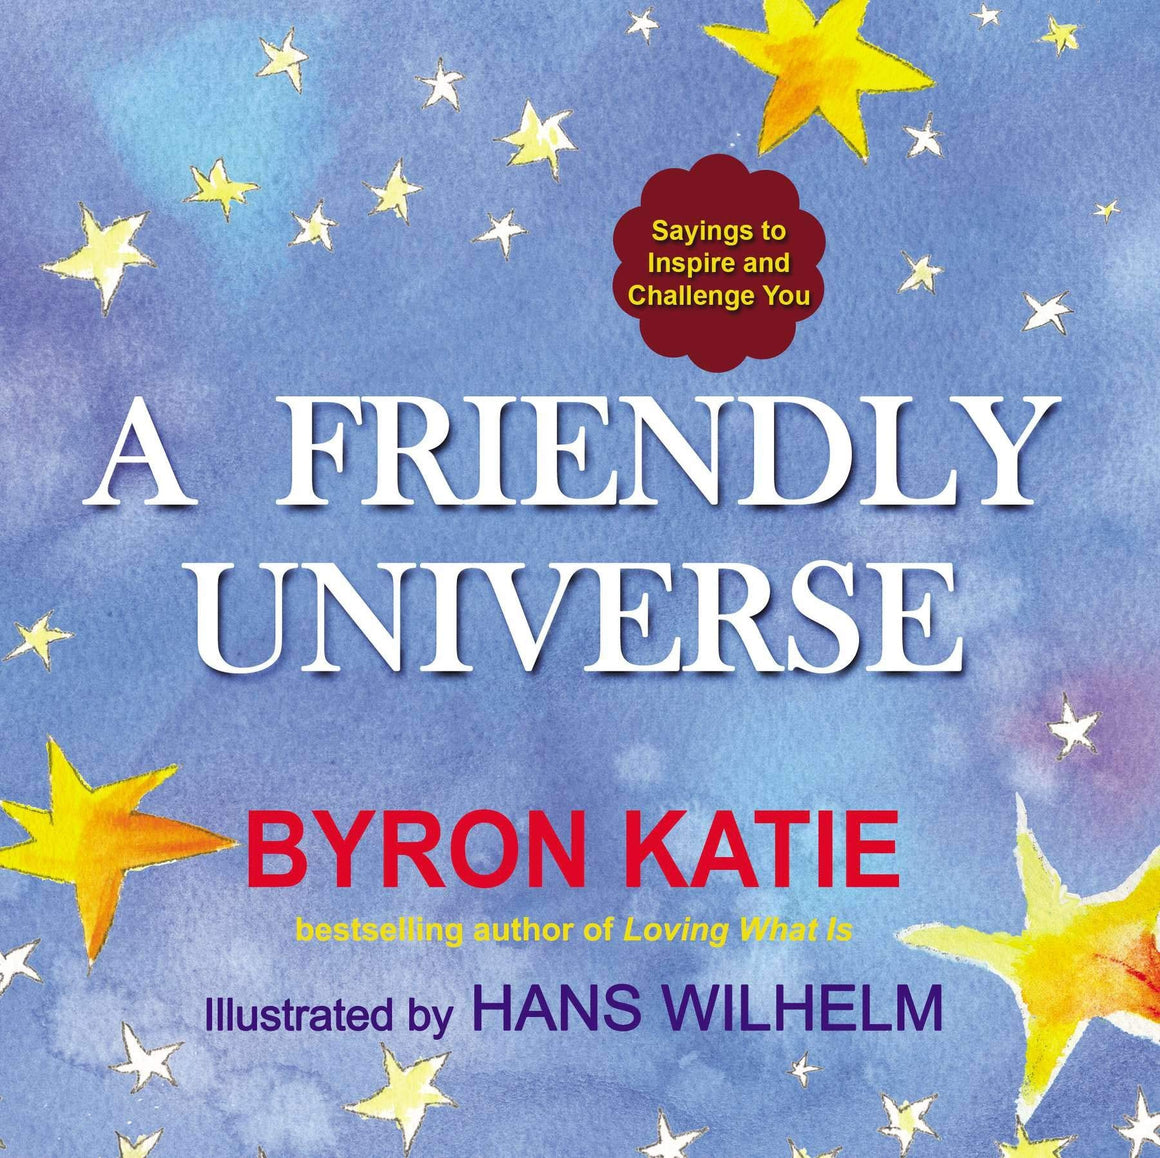 Friendly Universe Sayings To Inspire And Challenge You by Byron Katie